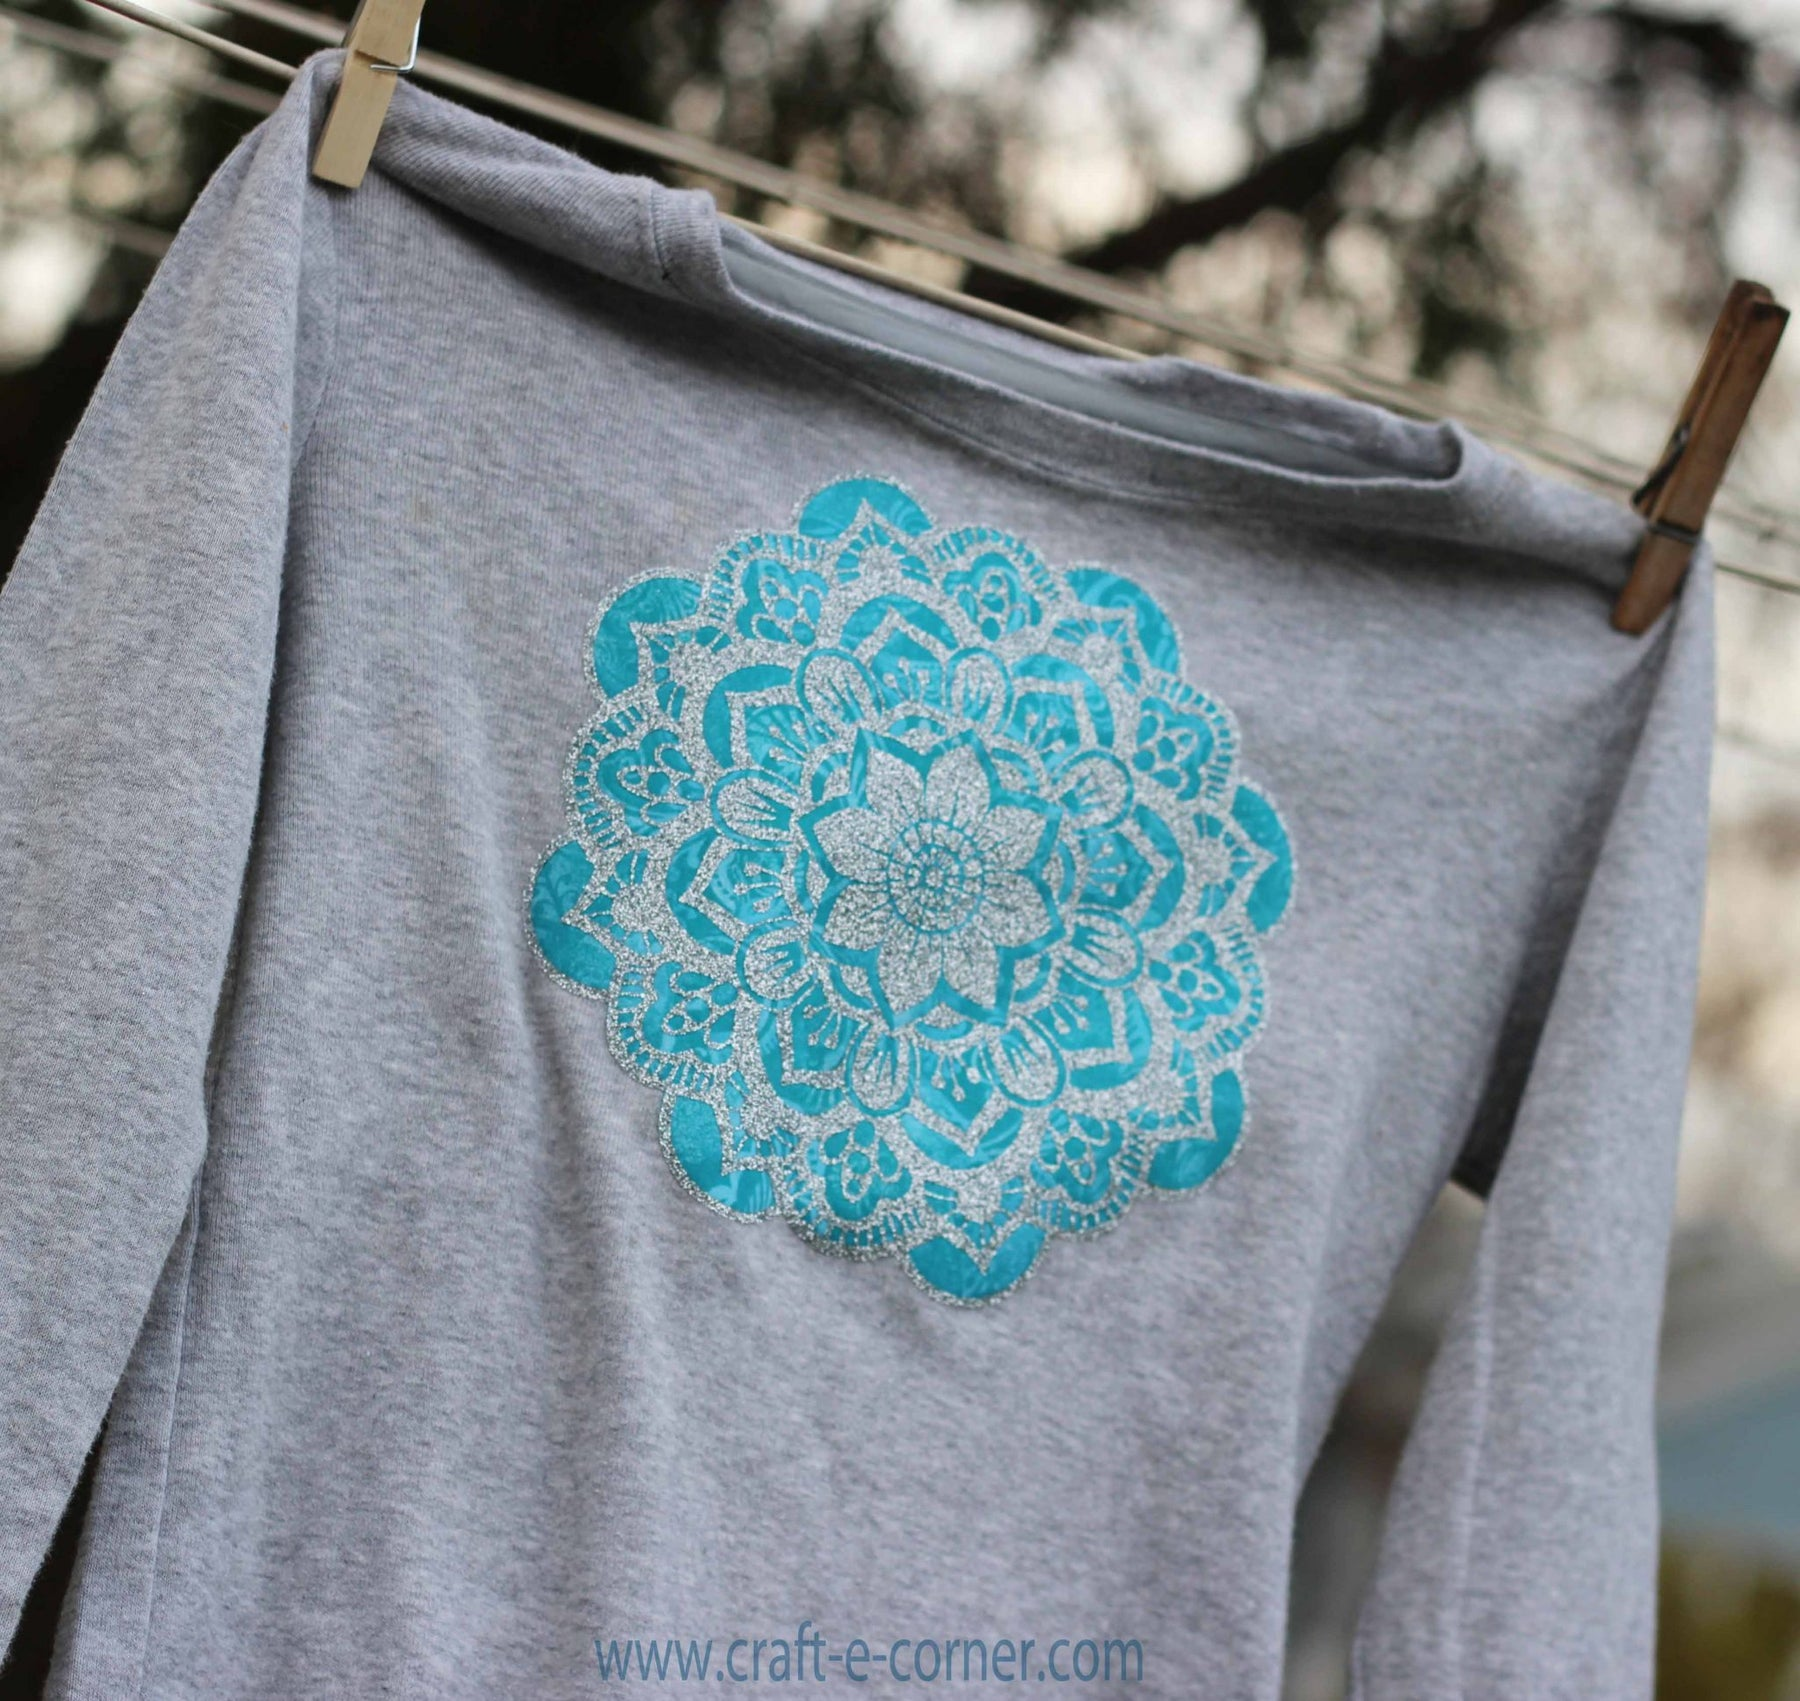 Fabric + Glitter Heat Transfer: A Silhouette Cameo Tutorial